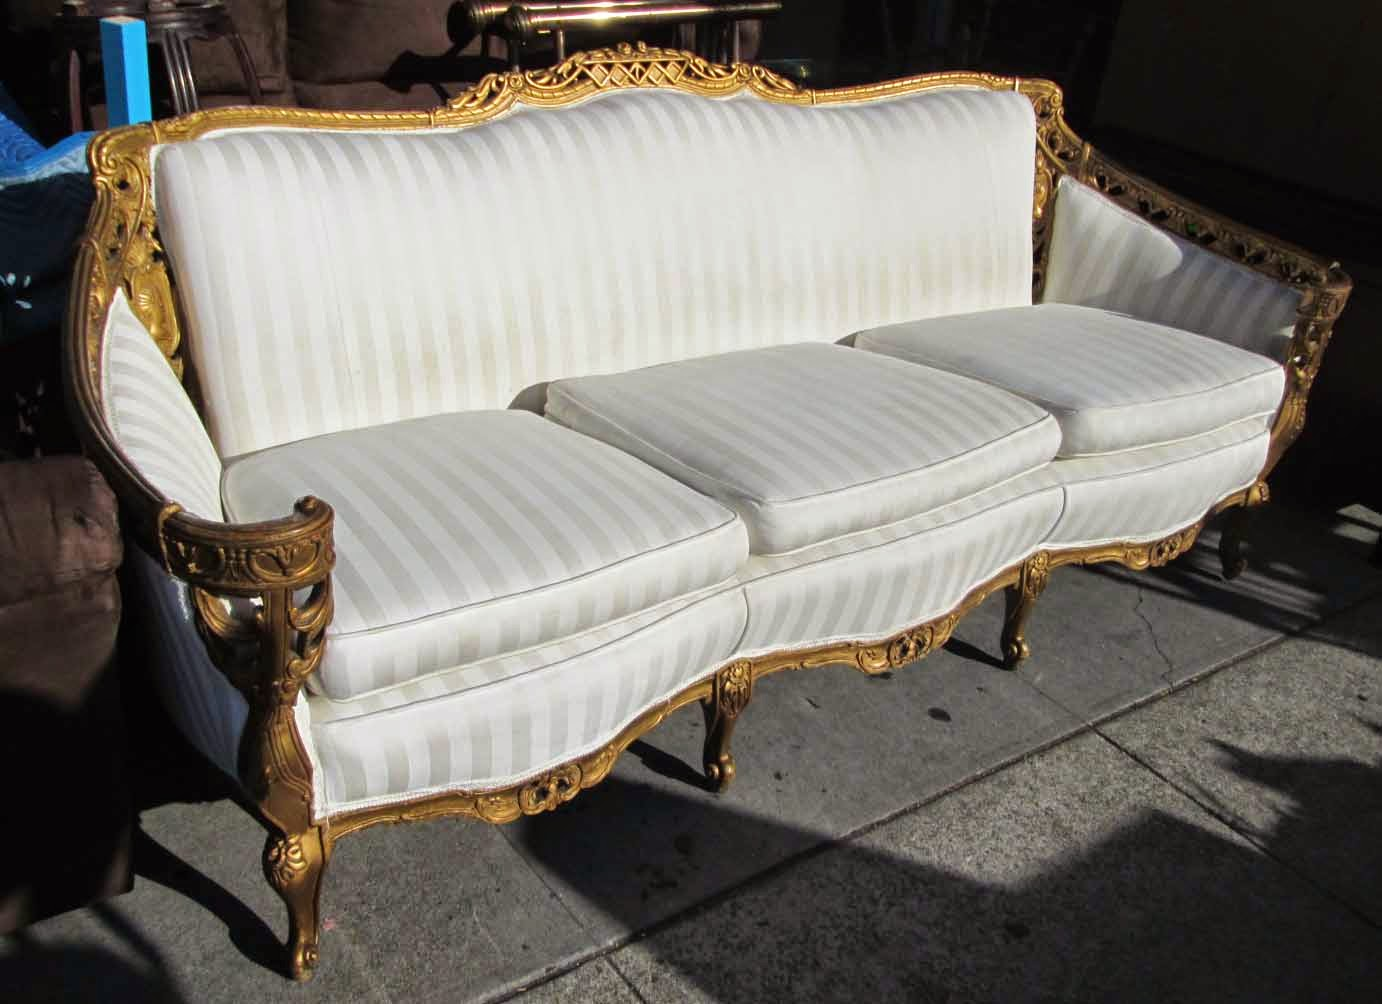 Uhuru furniture collectibles sold louis xiv style antique sofa 350 Antique loveseat styles